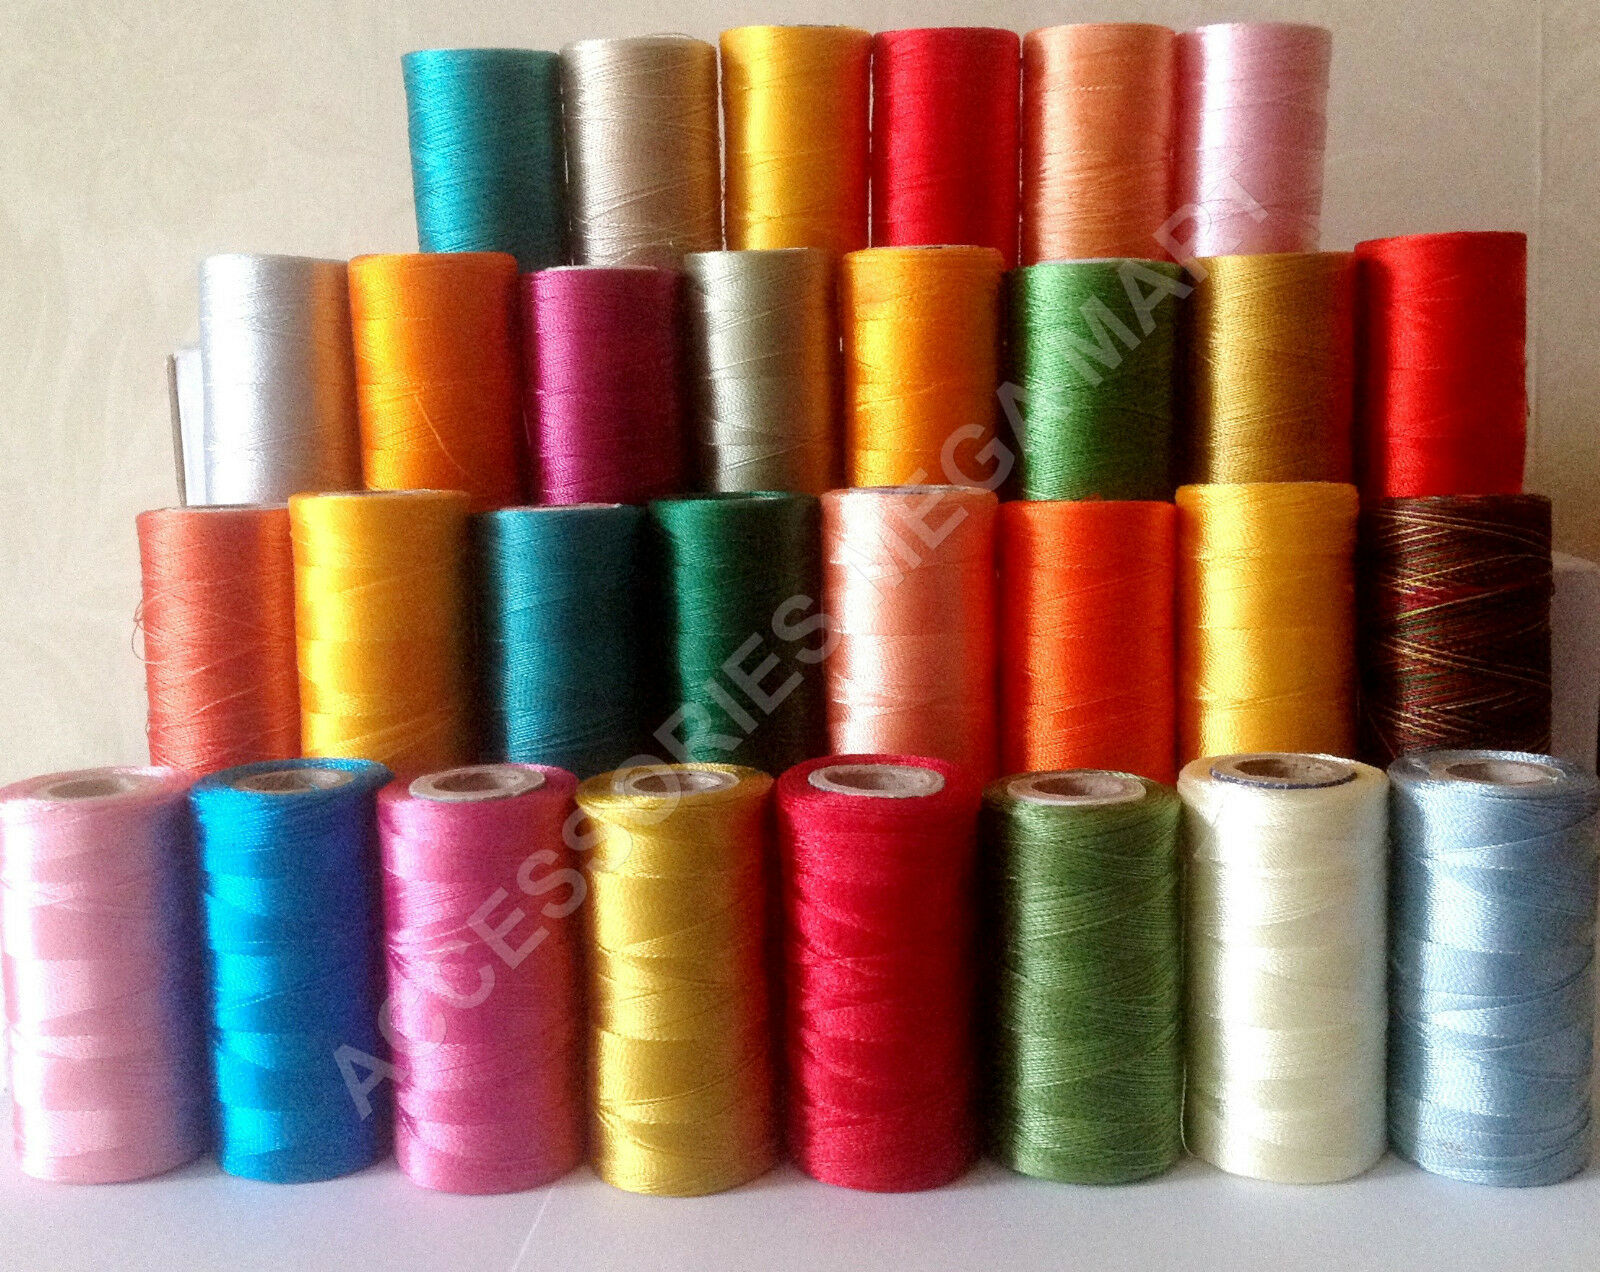 10 Crescent Rayon Viscose Silk Embroidery Machine Thread 2500m each Choose Color